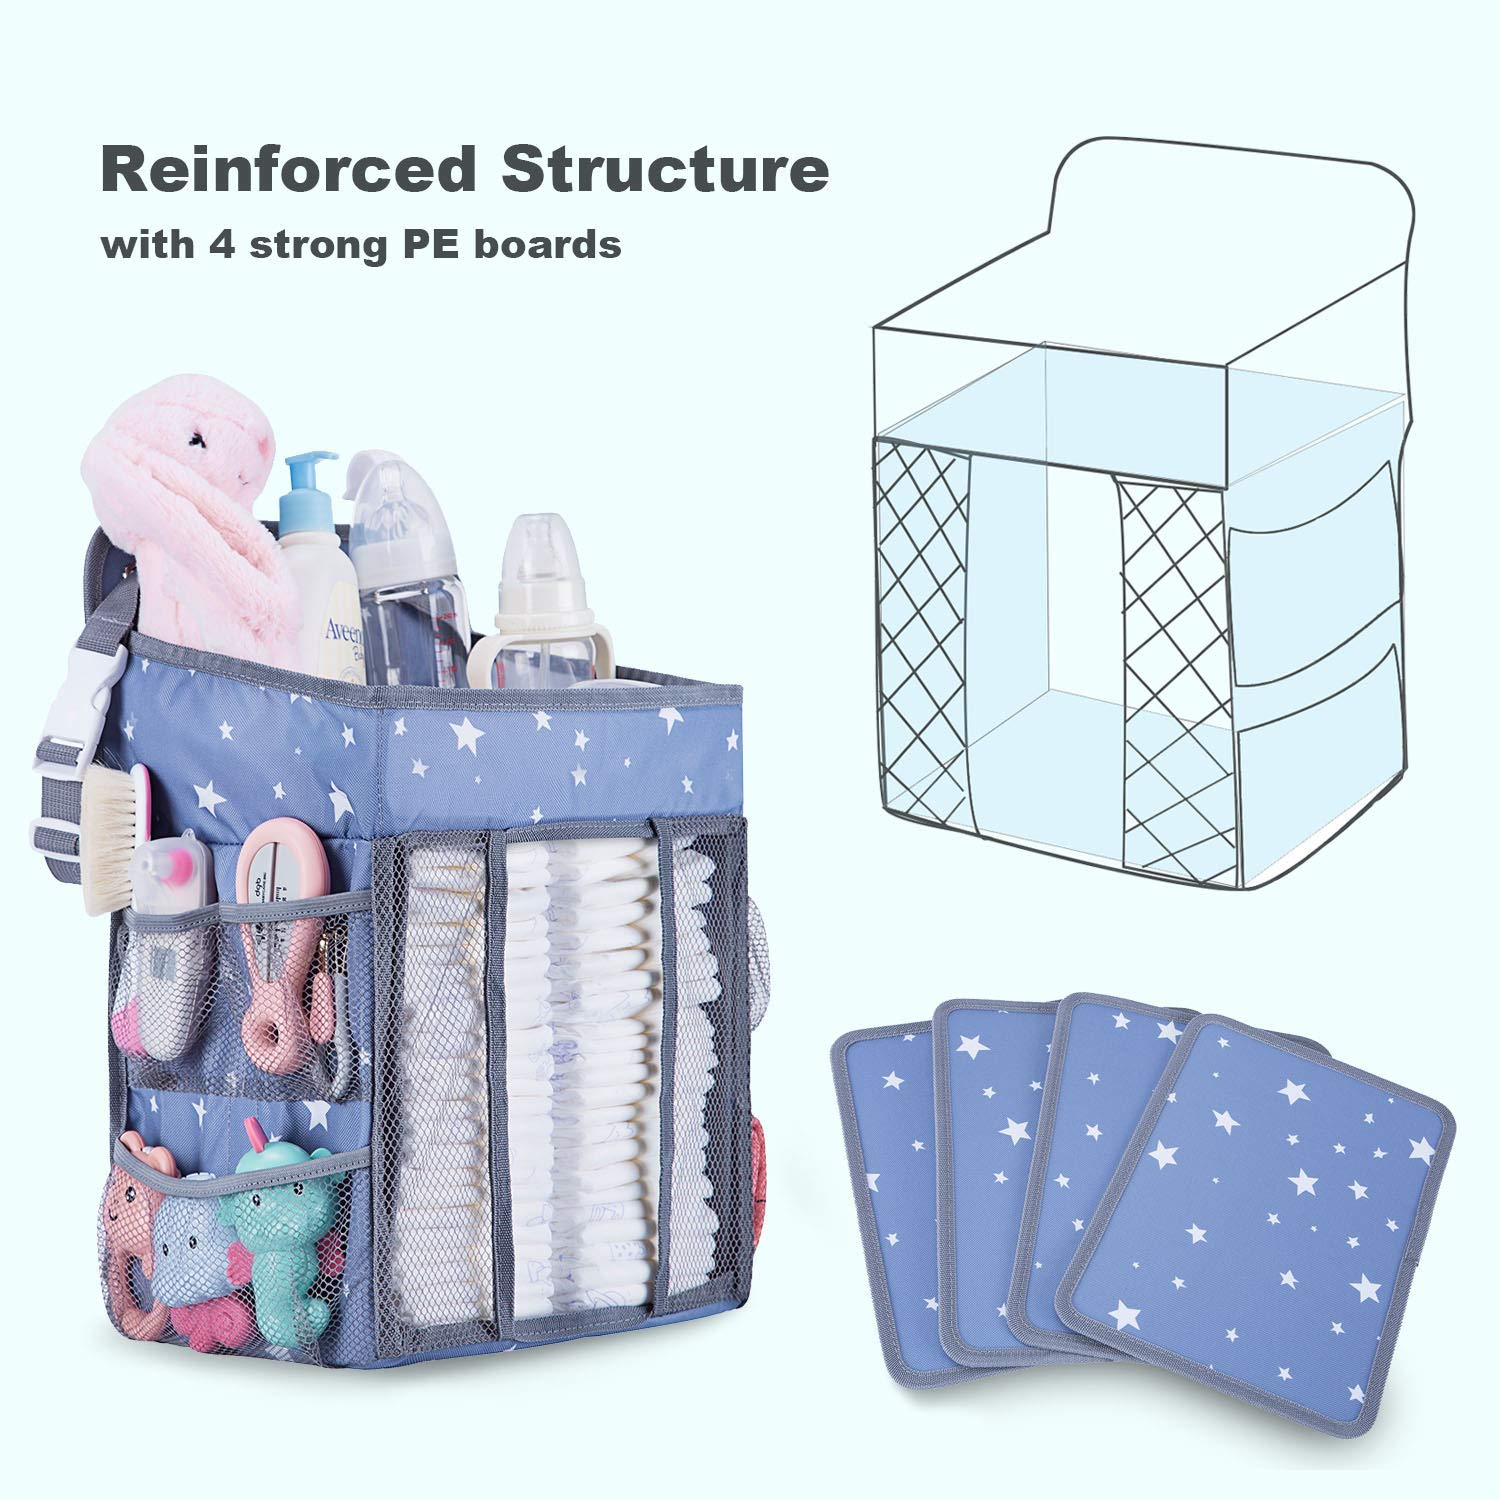 Playard or Wall Crib Baby Nappy Diaper Caddy Organiser Nursery Organization /& Baby Shower Gifts for Newborn Dark Grey Hanging Nappy Storage Diaper Stacker for Changing Table